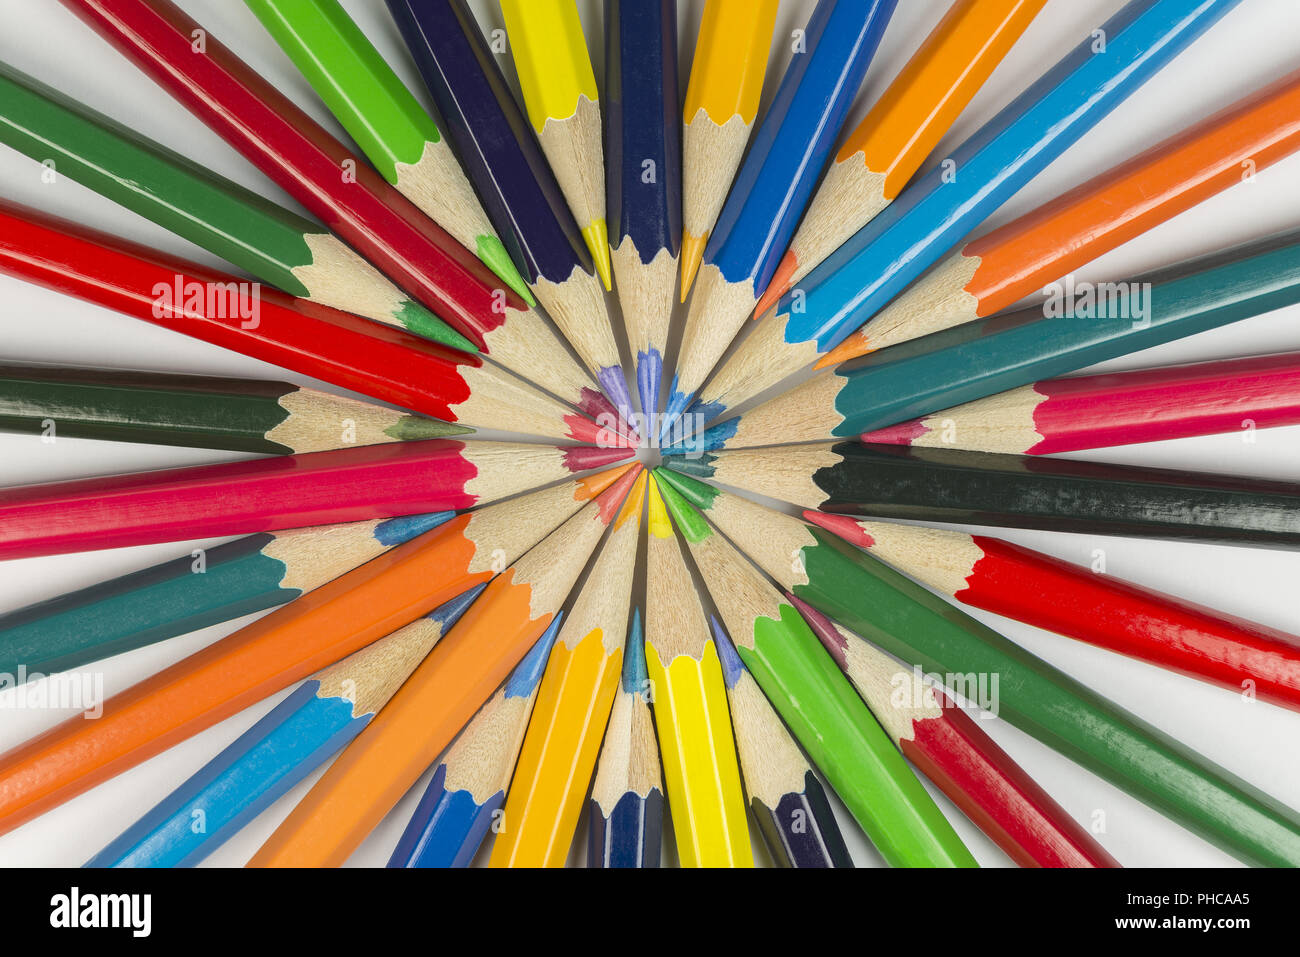 Color circle of pencils with complementary colors - Stock Image